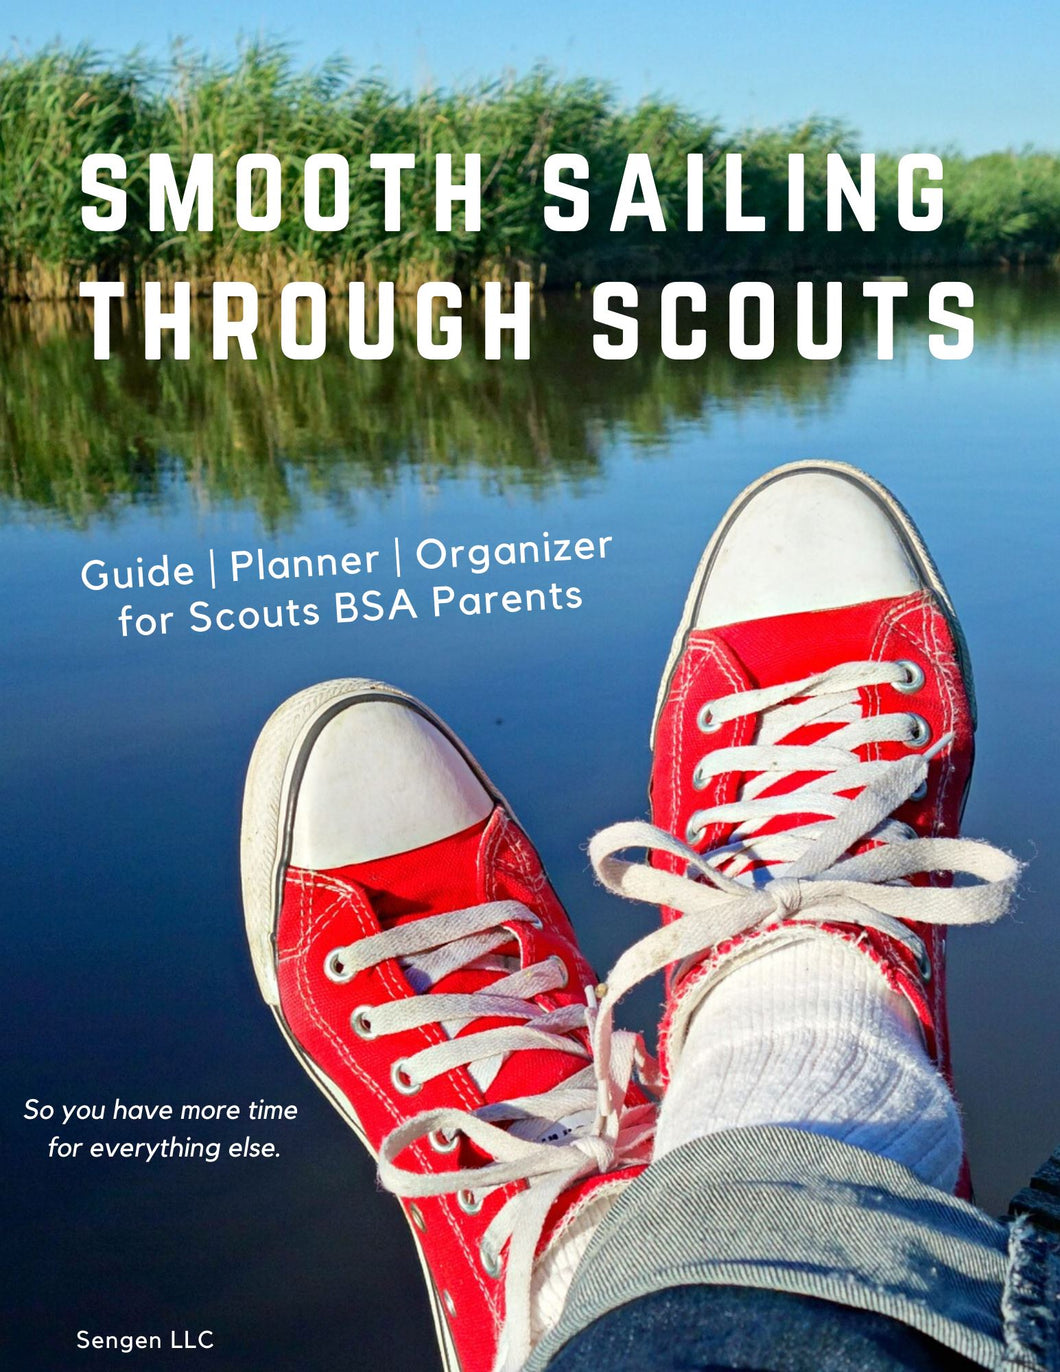 Smooth Sailing Guide eBook for New Scouts BSA Parents Guide ebook SENGEN